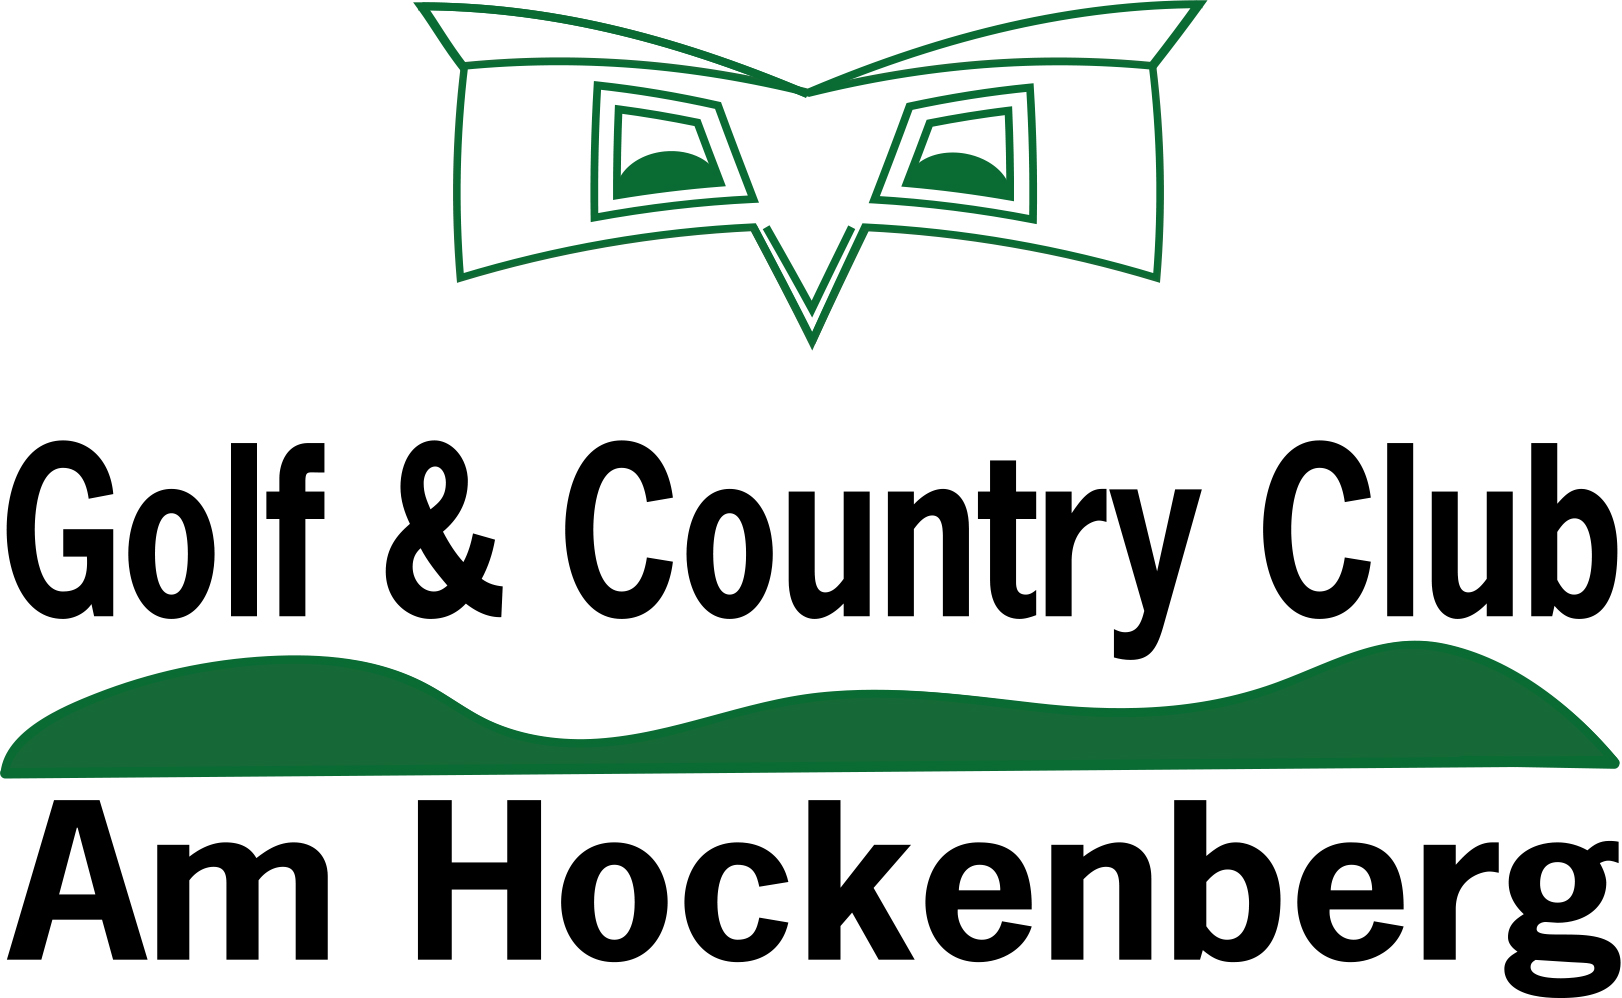 Golf & Country Club Am Hockenberg